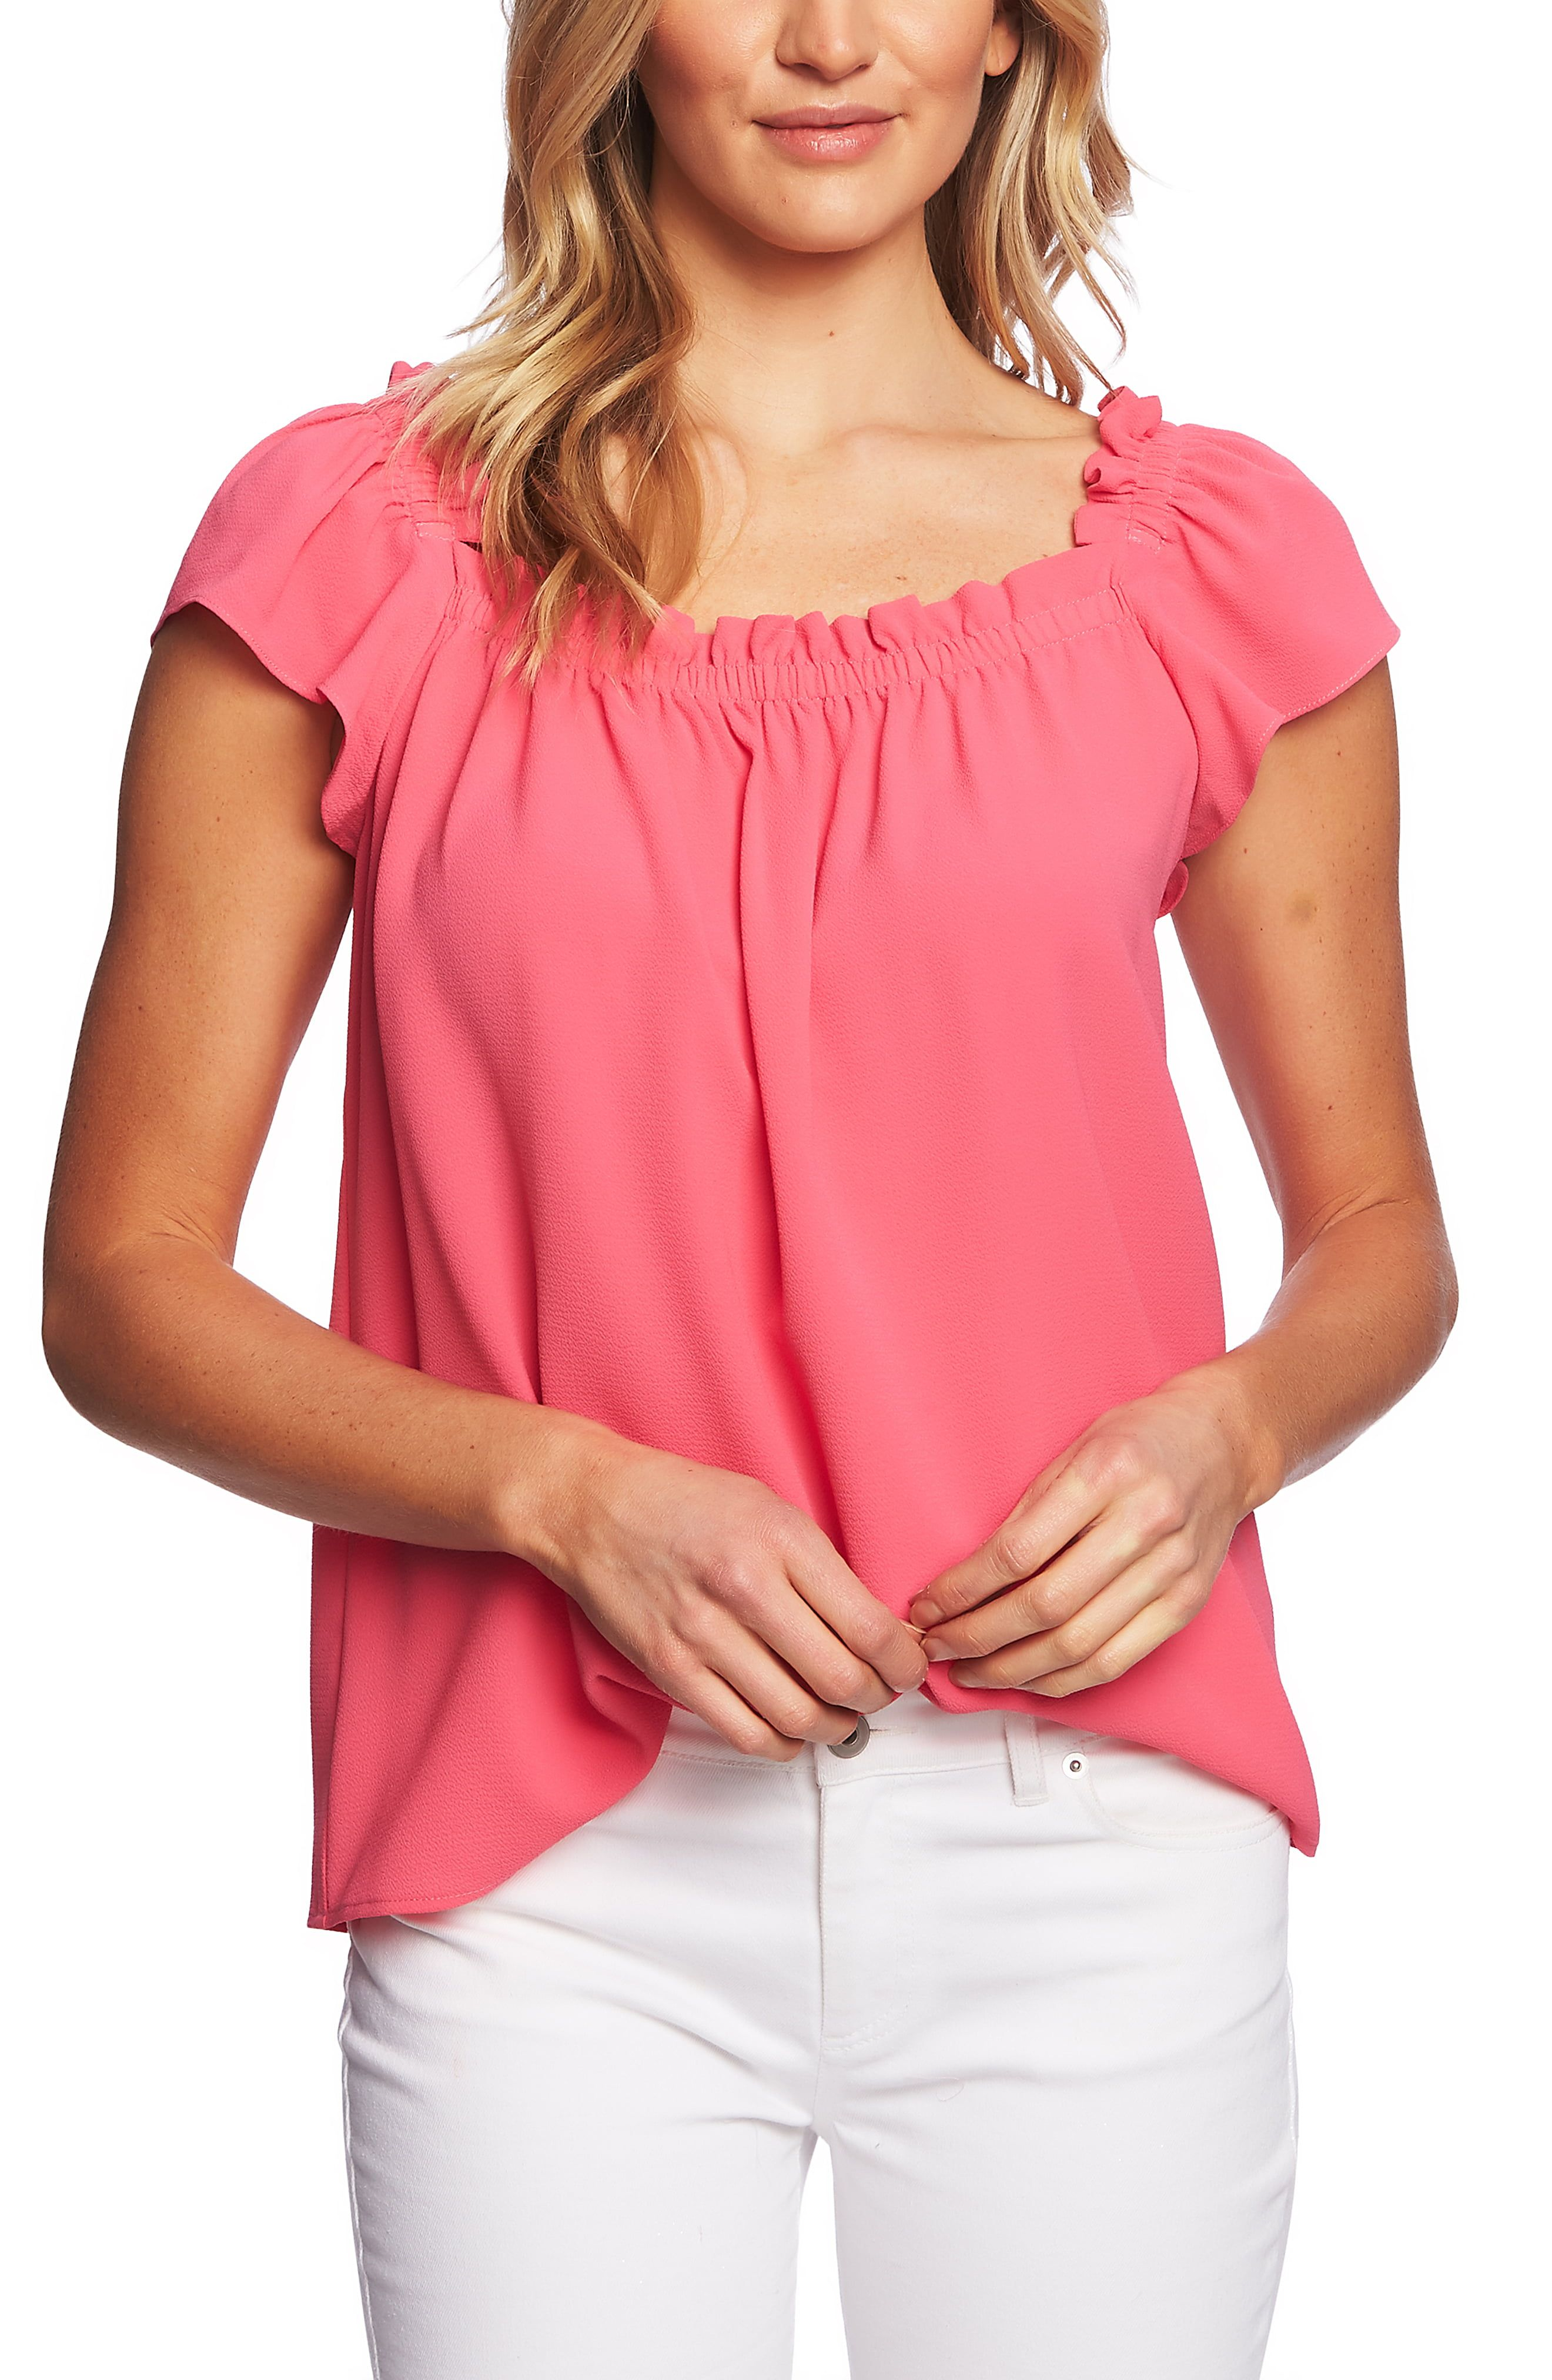 fbea432ccc3143 CeCe Square Neck Blouse in 2019 | Products | Square neck top, Tops ...